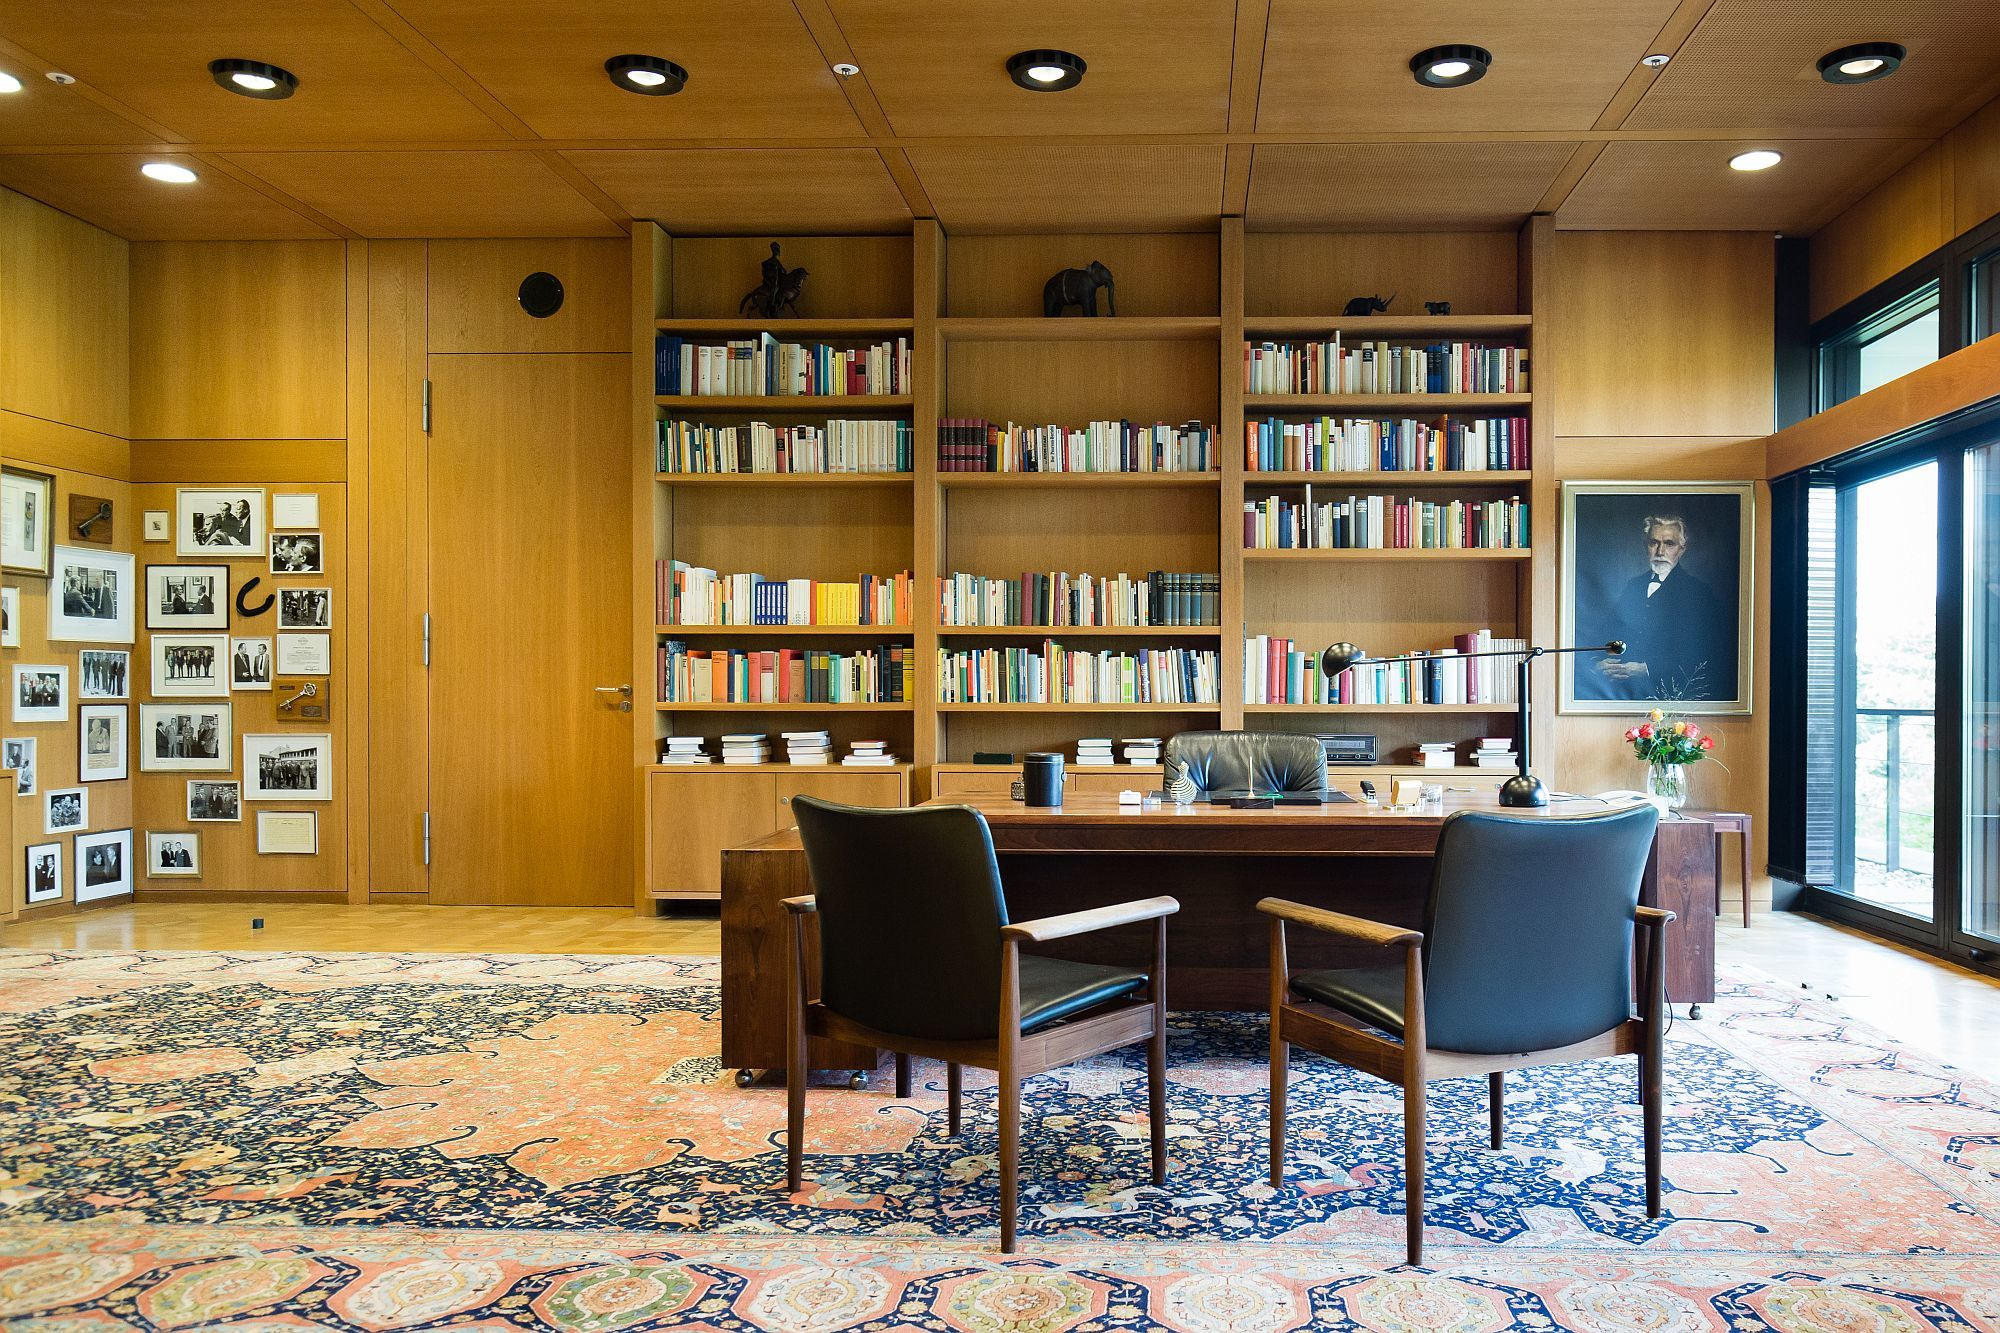 the Chancellor's study in Bonn